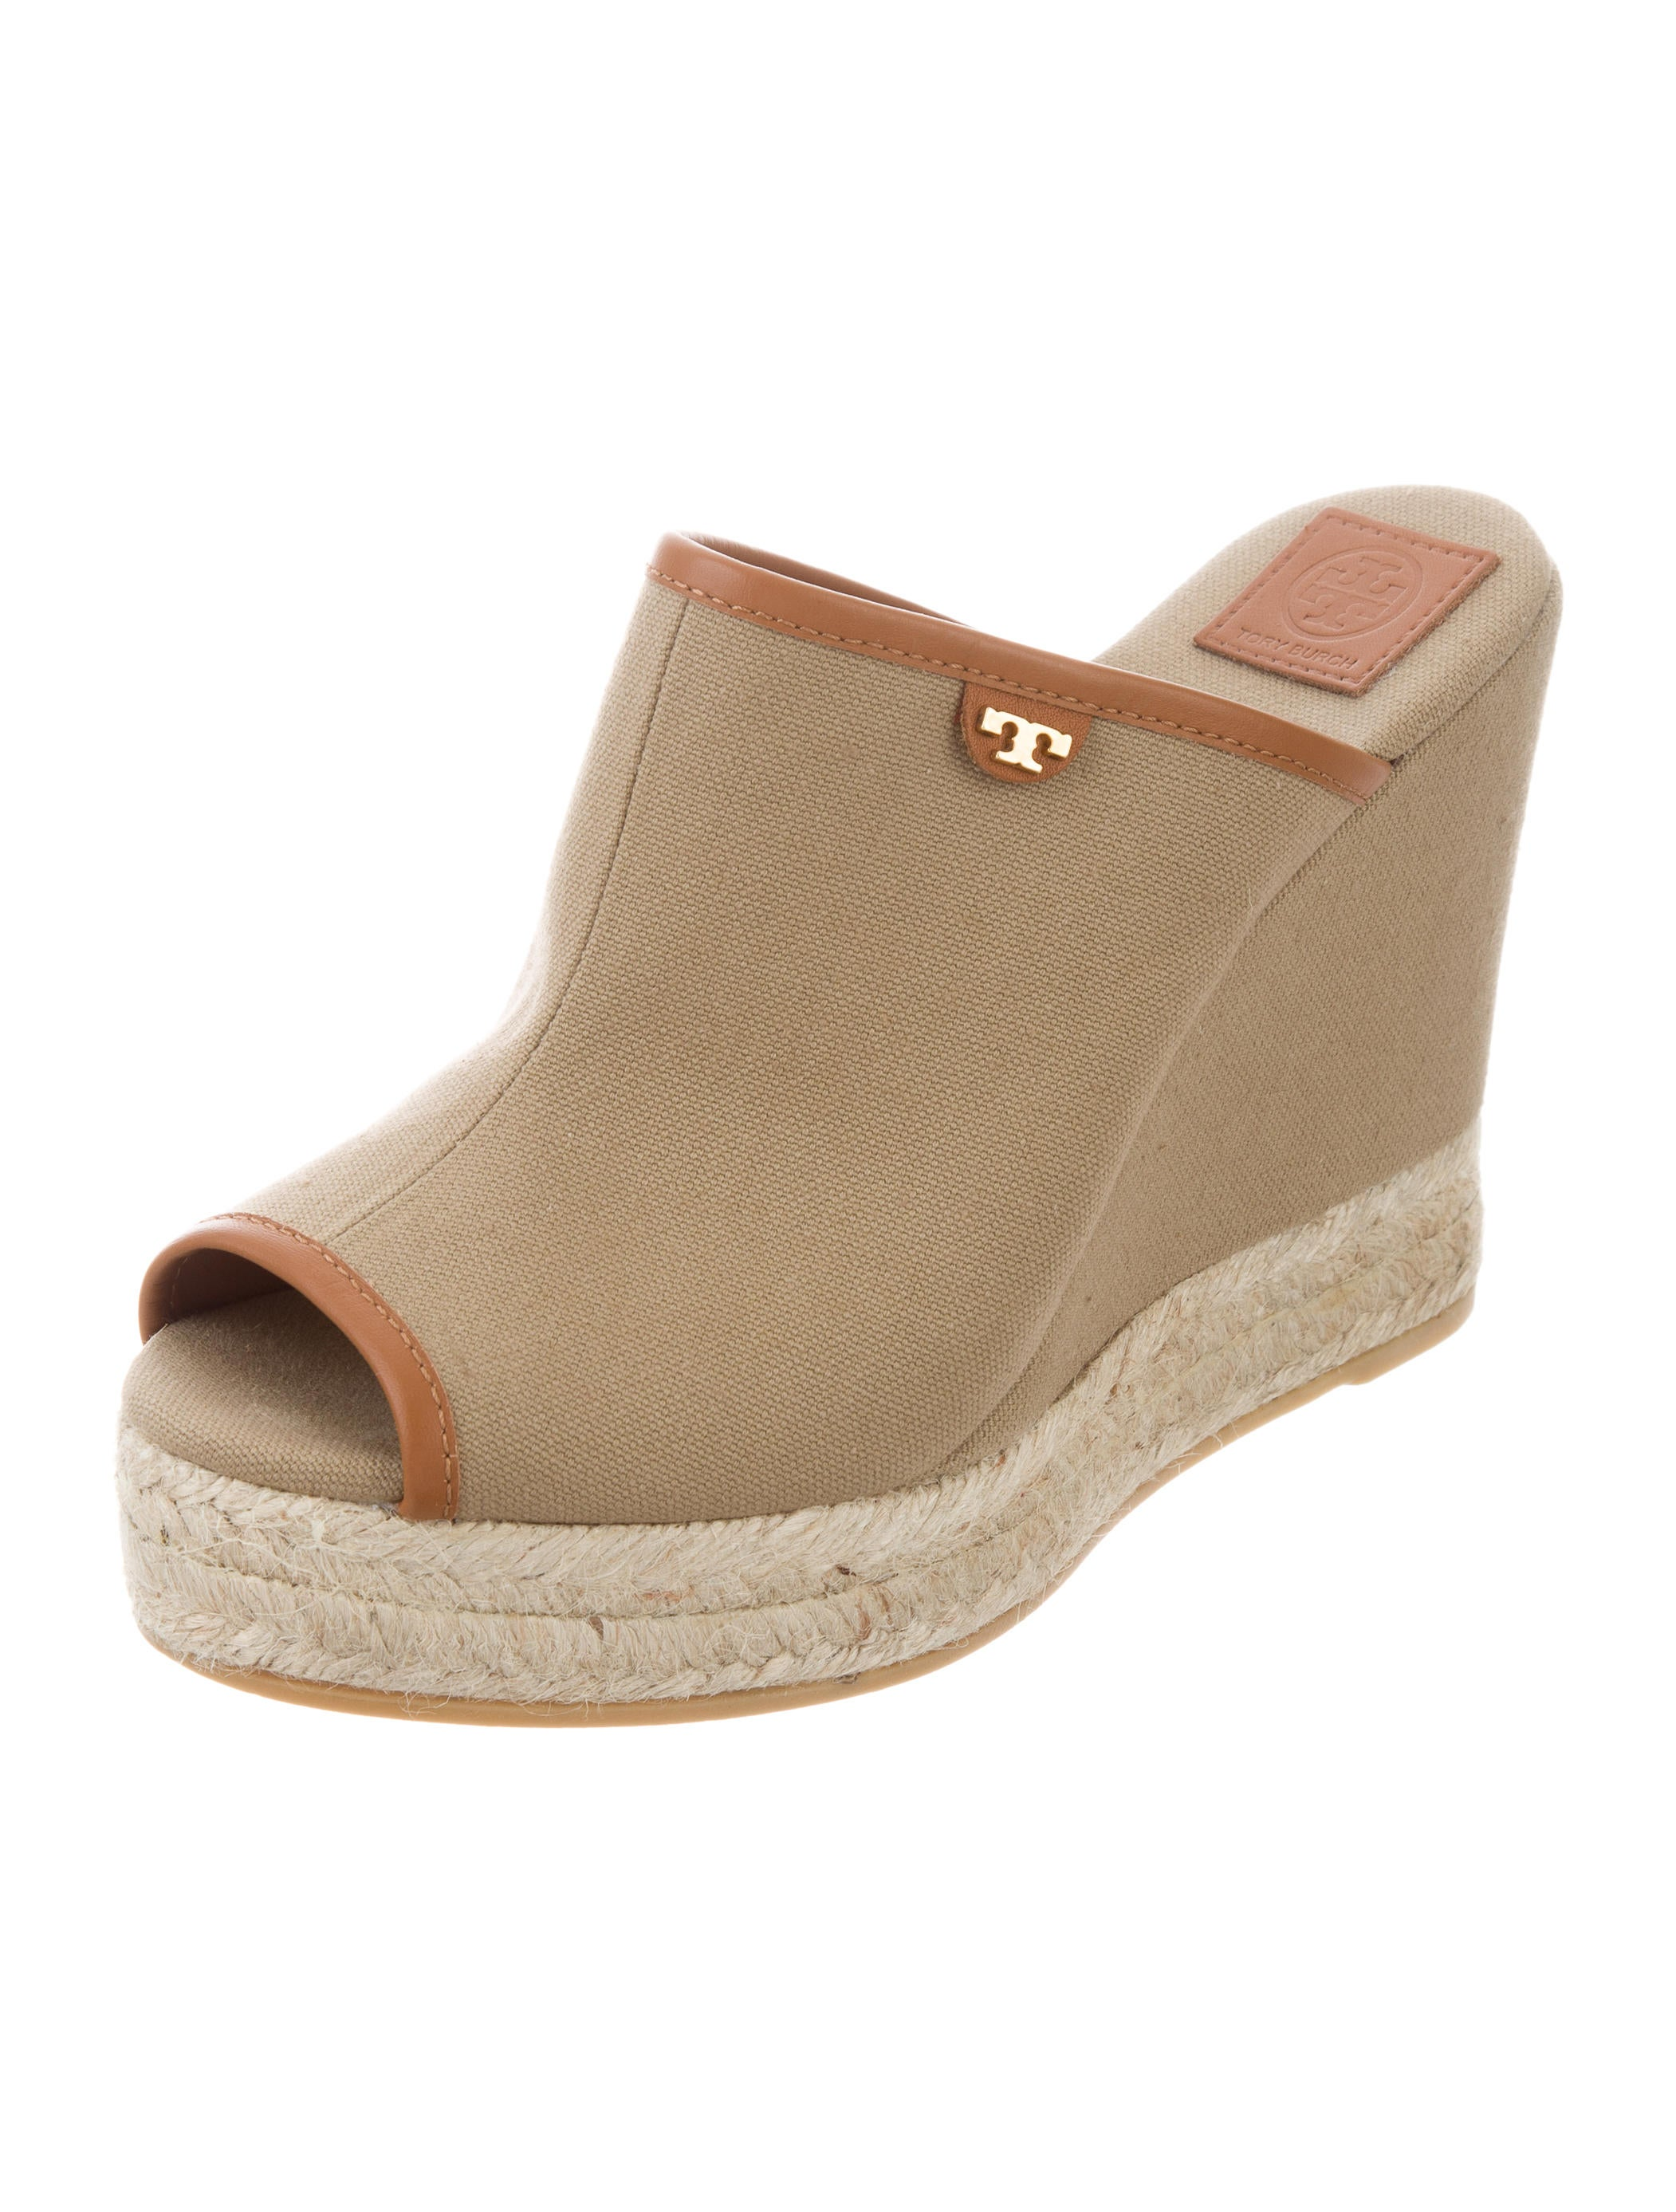 Shop eBay for great deals on Women's Canvas Wedge Boots. You'll find new or used products in Women's Canvas Wedge Boots on eBay. Free shipping on selected items.